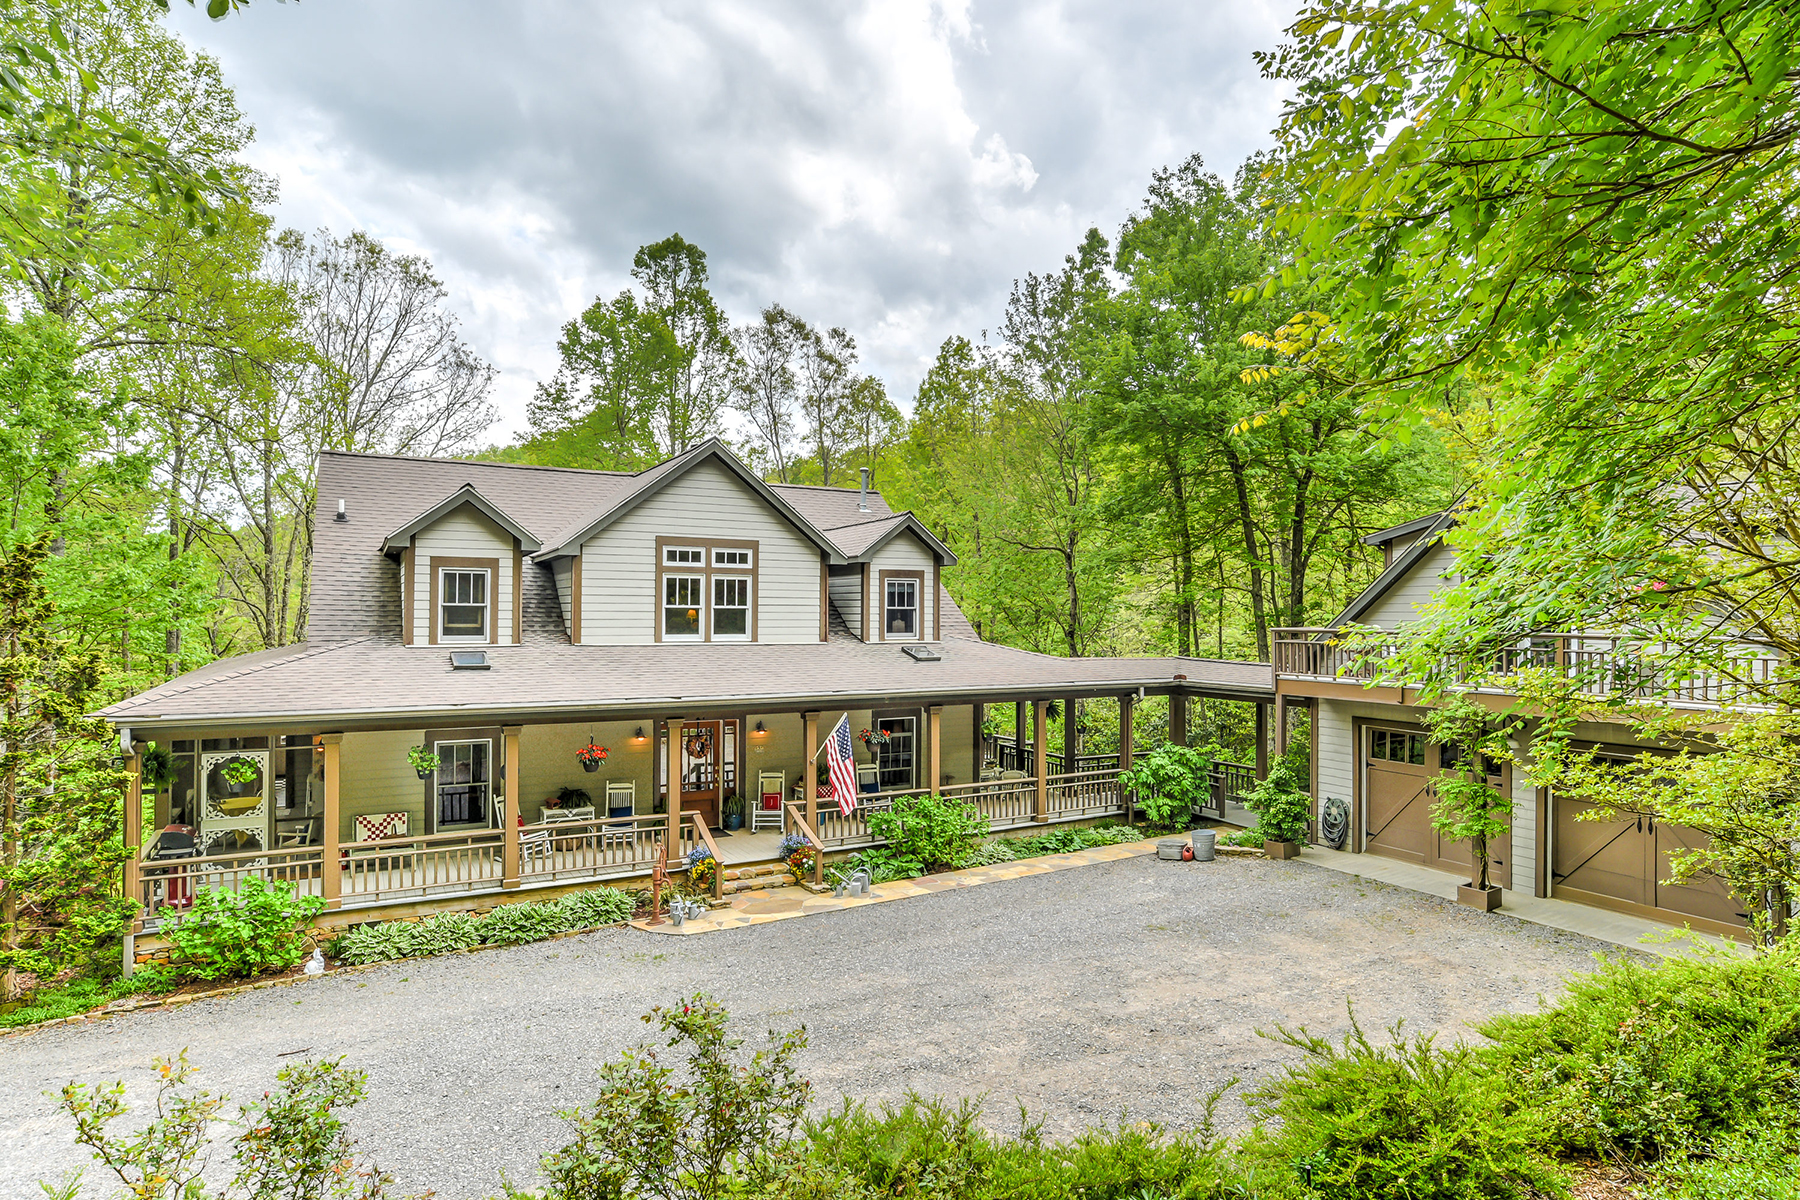 Single Family Home for Active at BLACK MOUNTAIN 21 Chestnut Hill Black Mountain, North Carolina 28711 United States